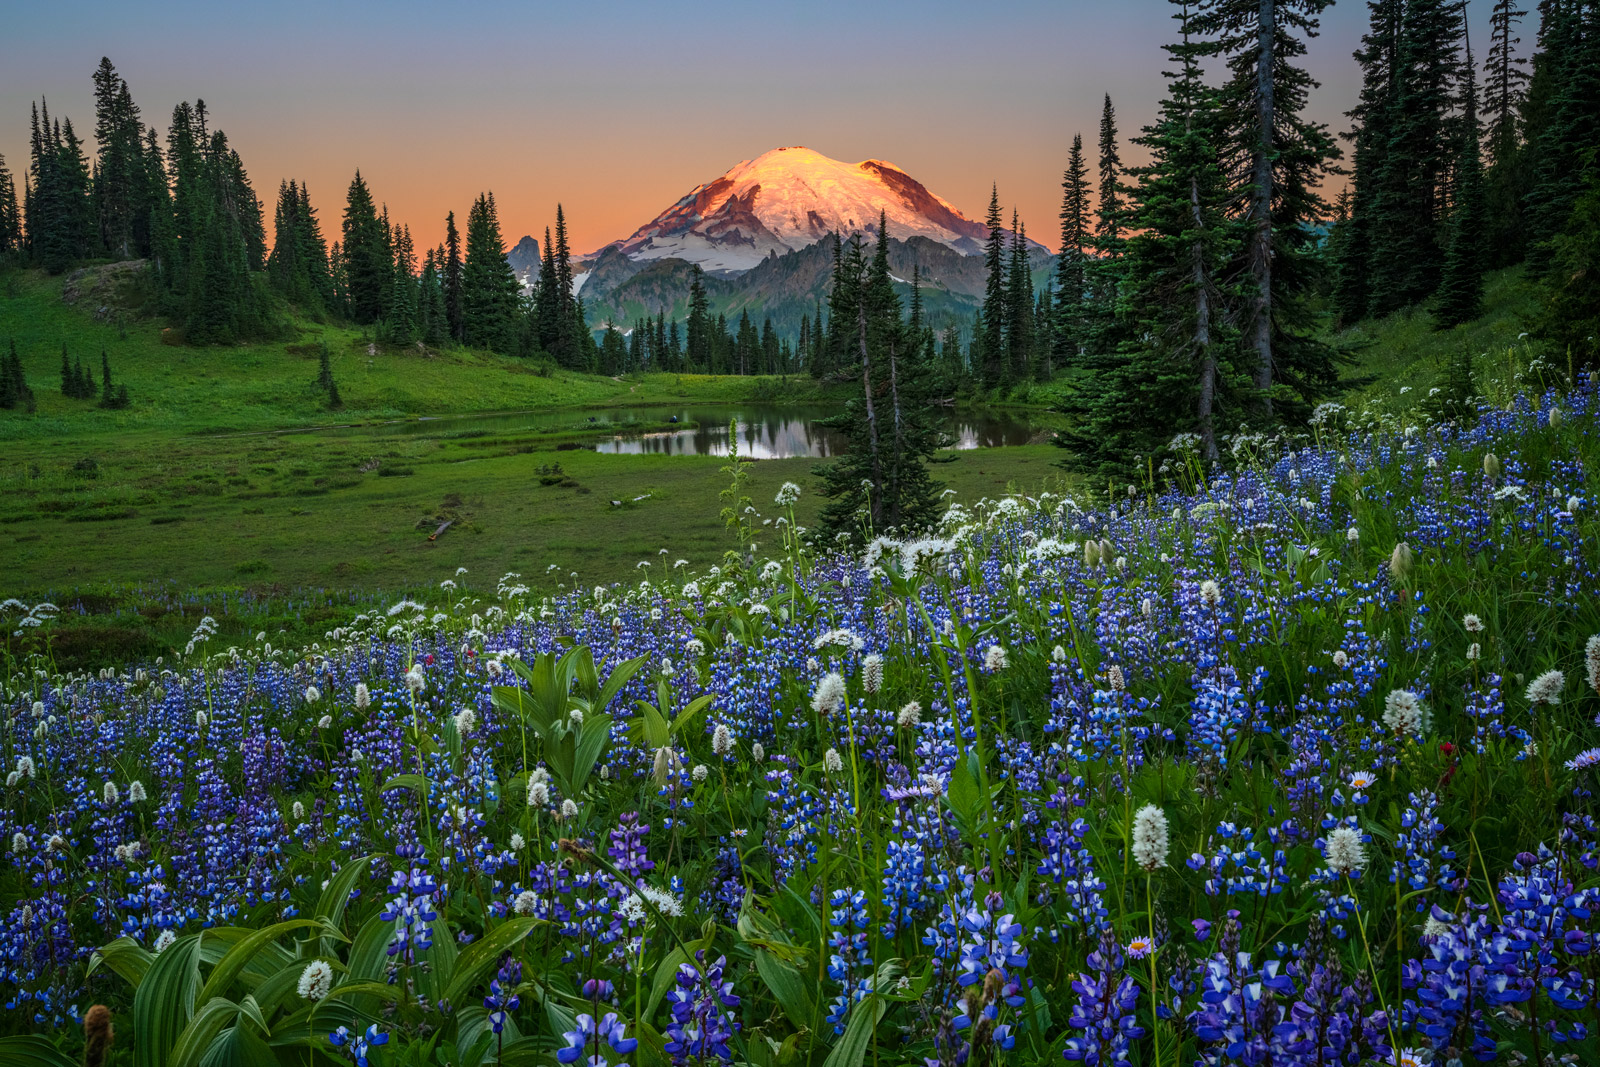 Washington, Mount Rainier, National Park, Flowers, Summer, Tipsoo, Lake, Lupines, Fine Art, Landscape, Photograph